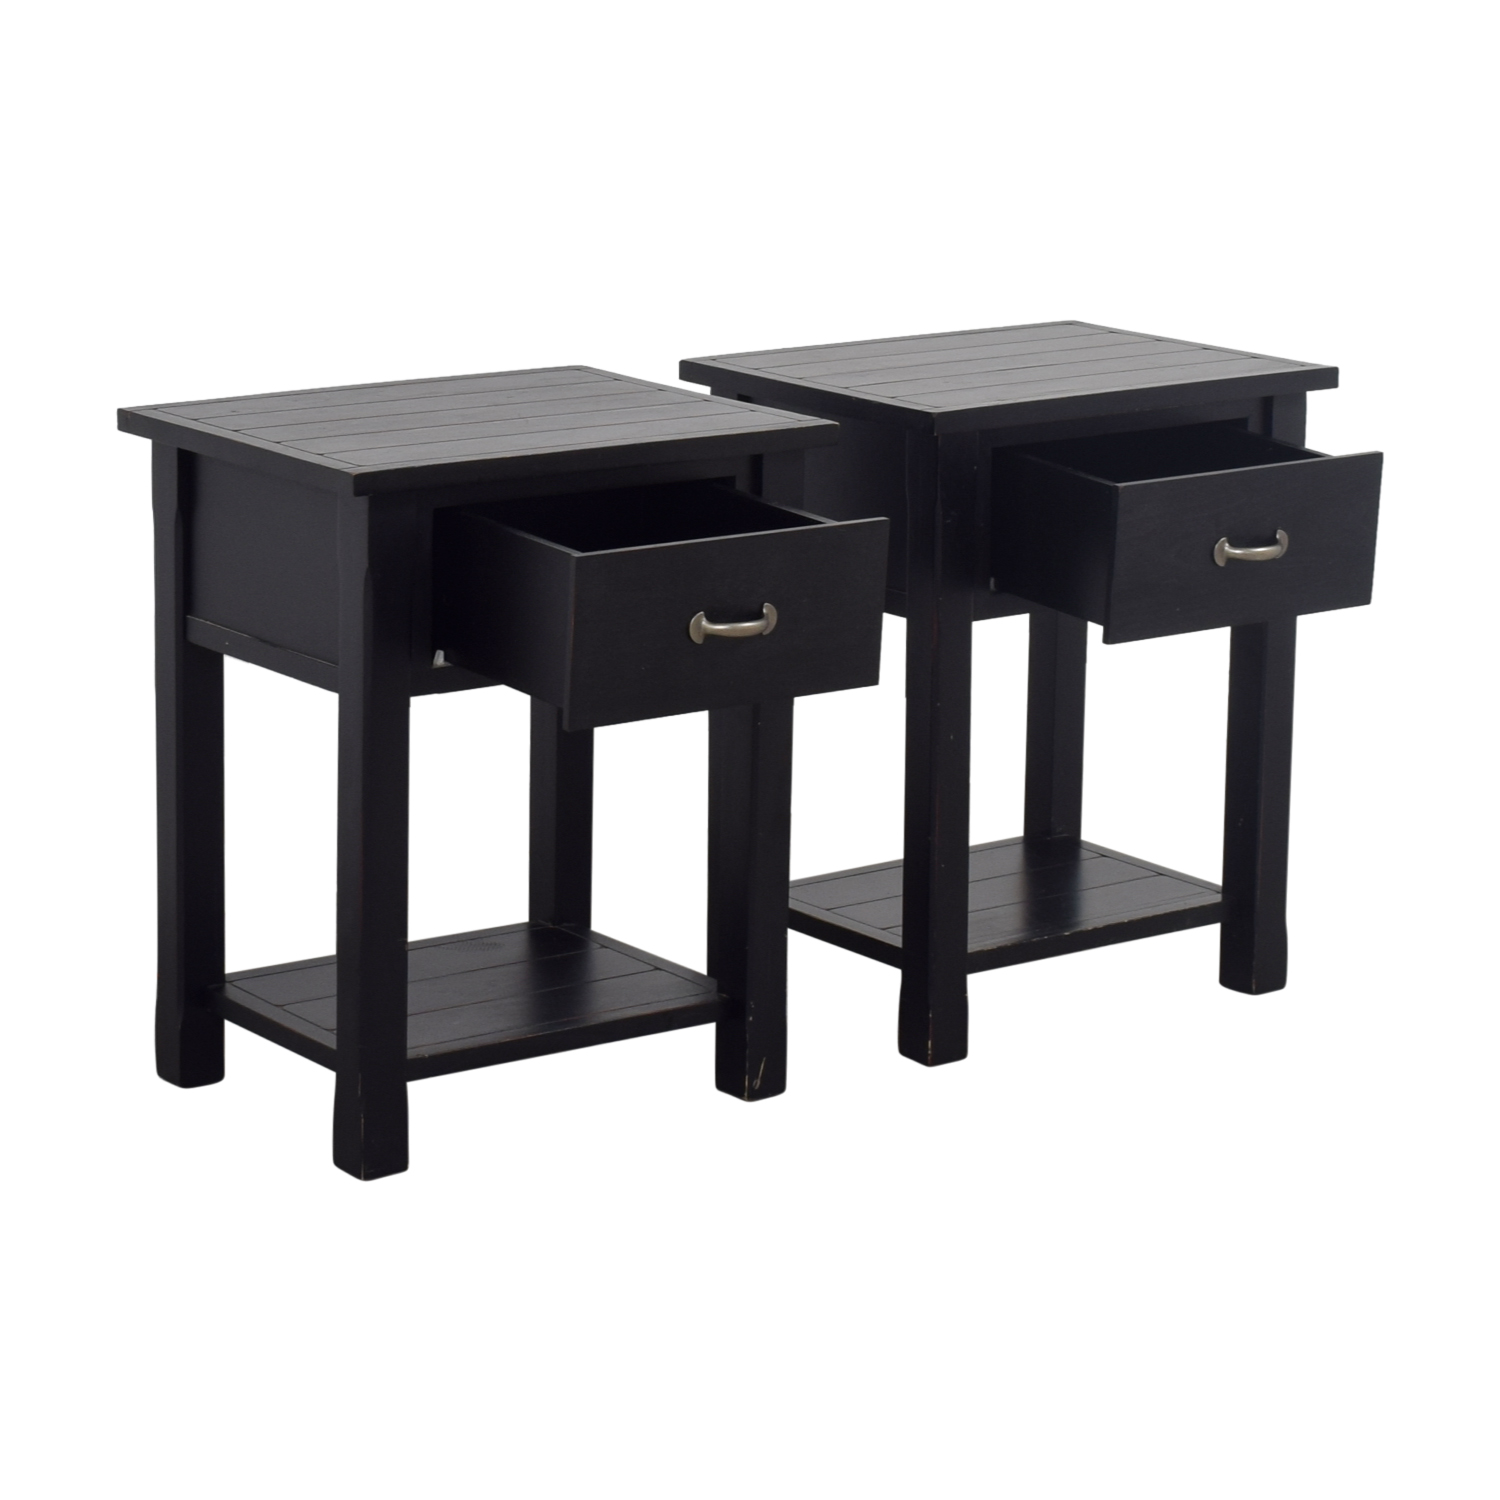 Pottery Barn Pottery Barn Black Single Drawer Side Tables for sale